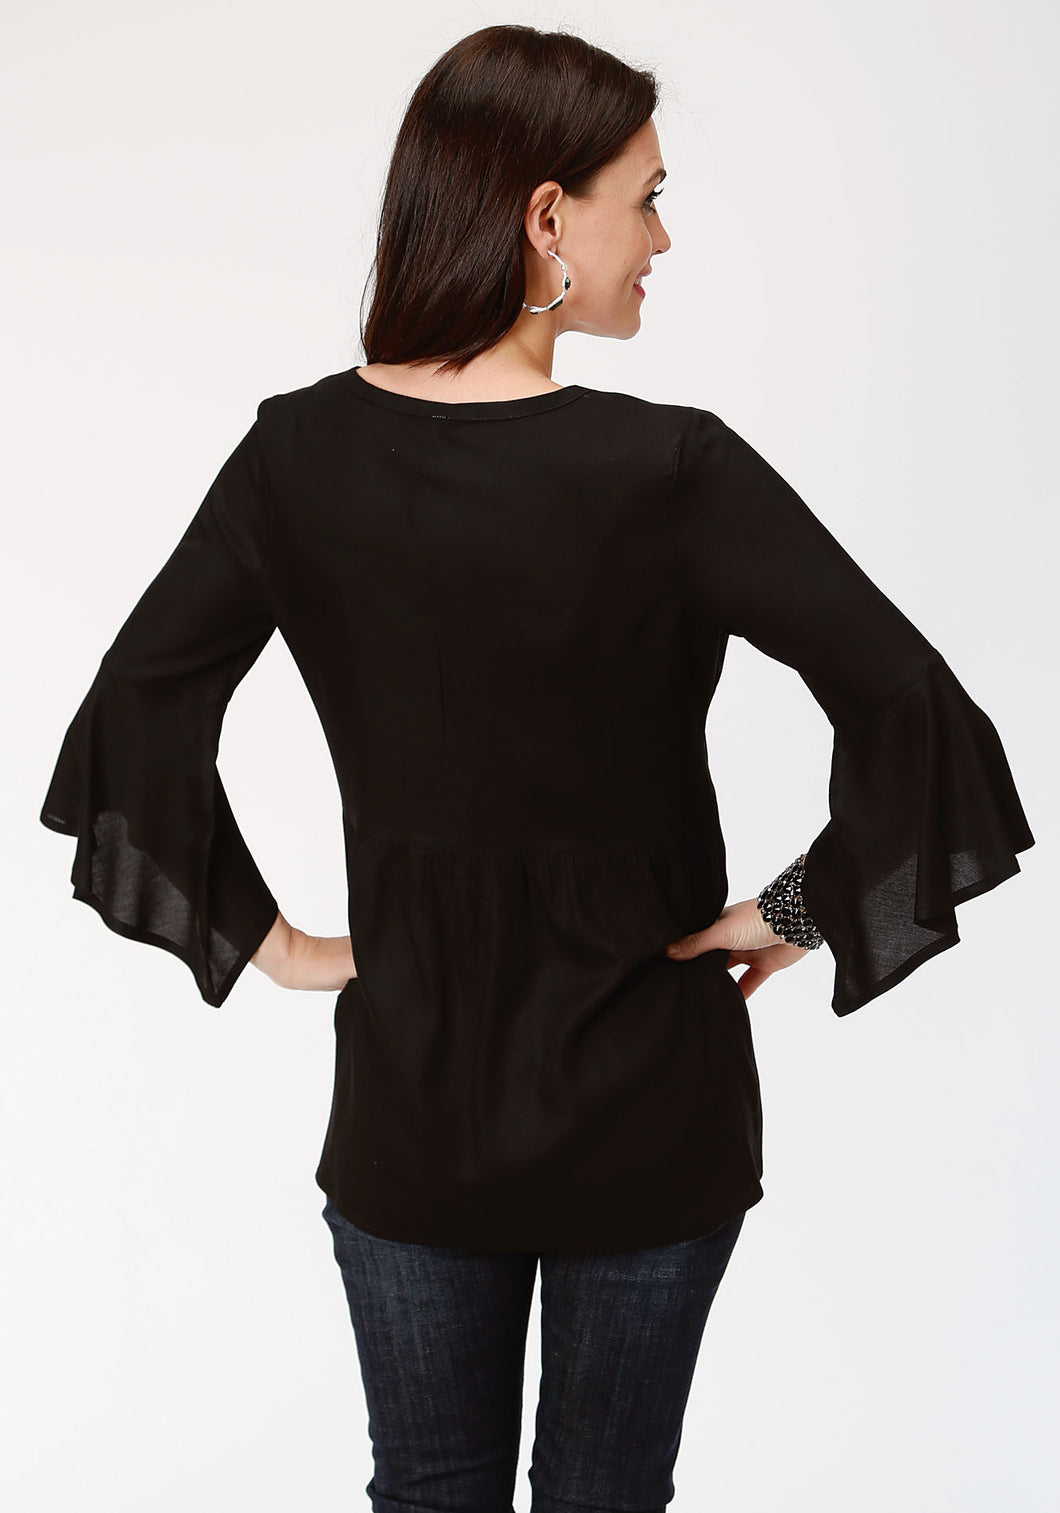 Studio West- Southern Blooms Swest Womens Long Sleeve 00108 Rayon Challis Peasant Blouse